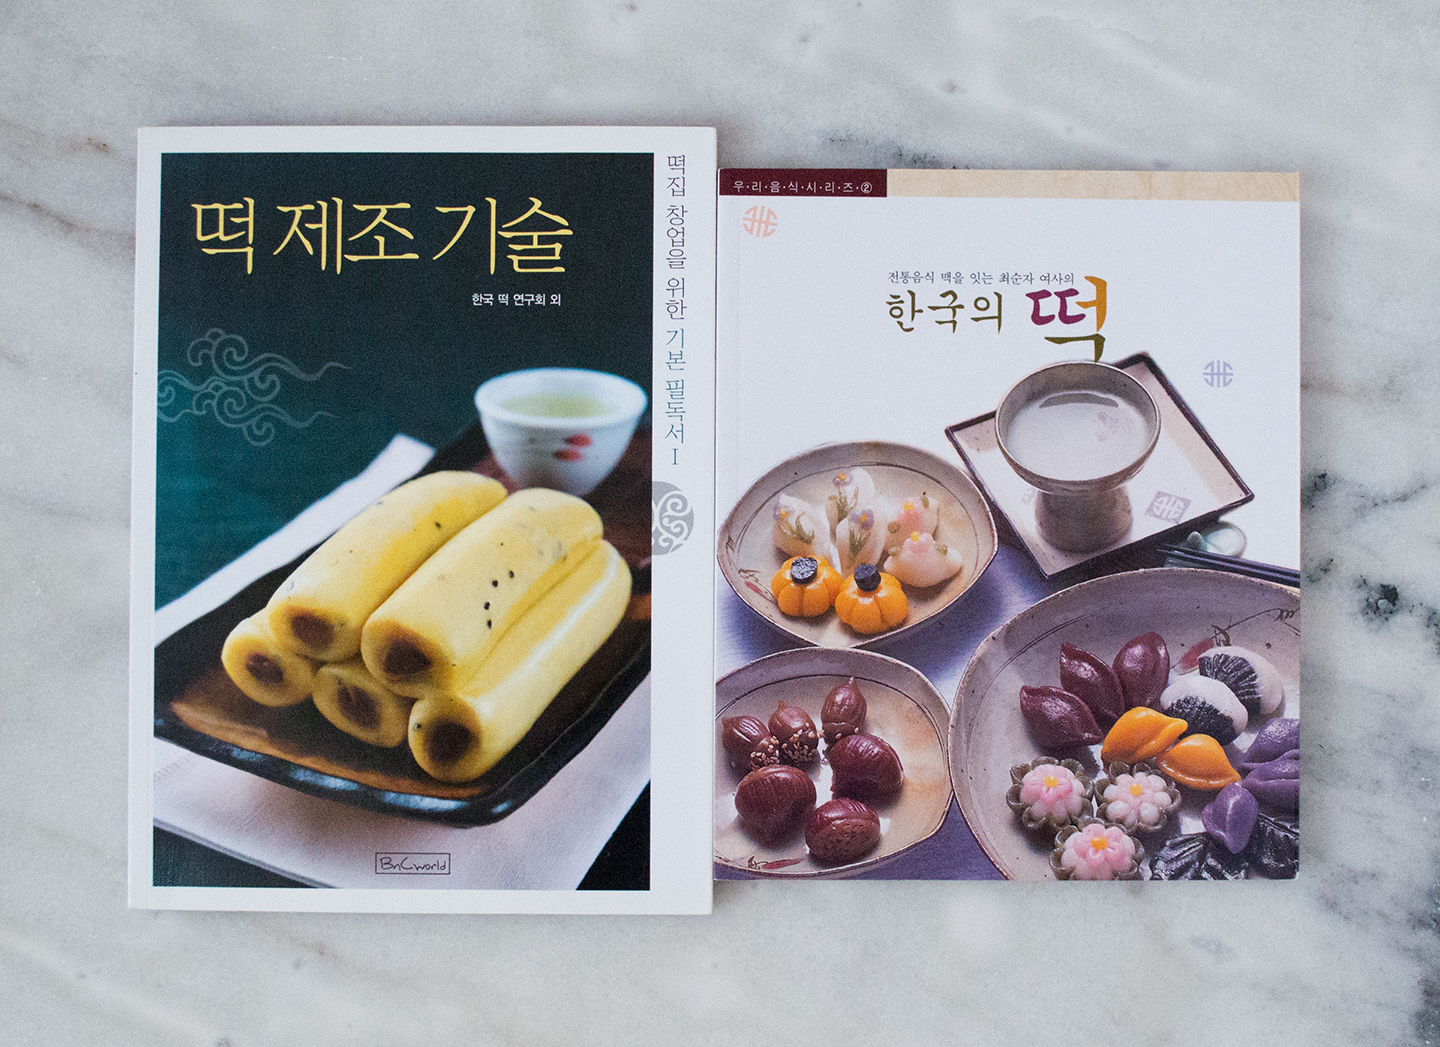 Kyobo Bookstore - Traditional Rice Cake Books